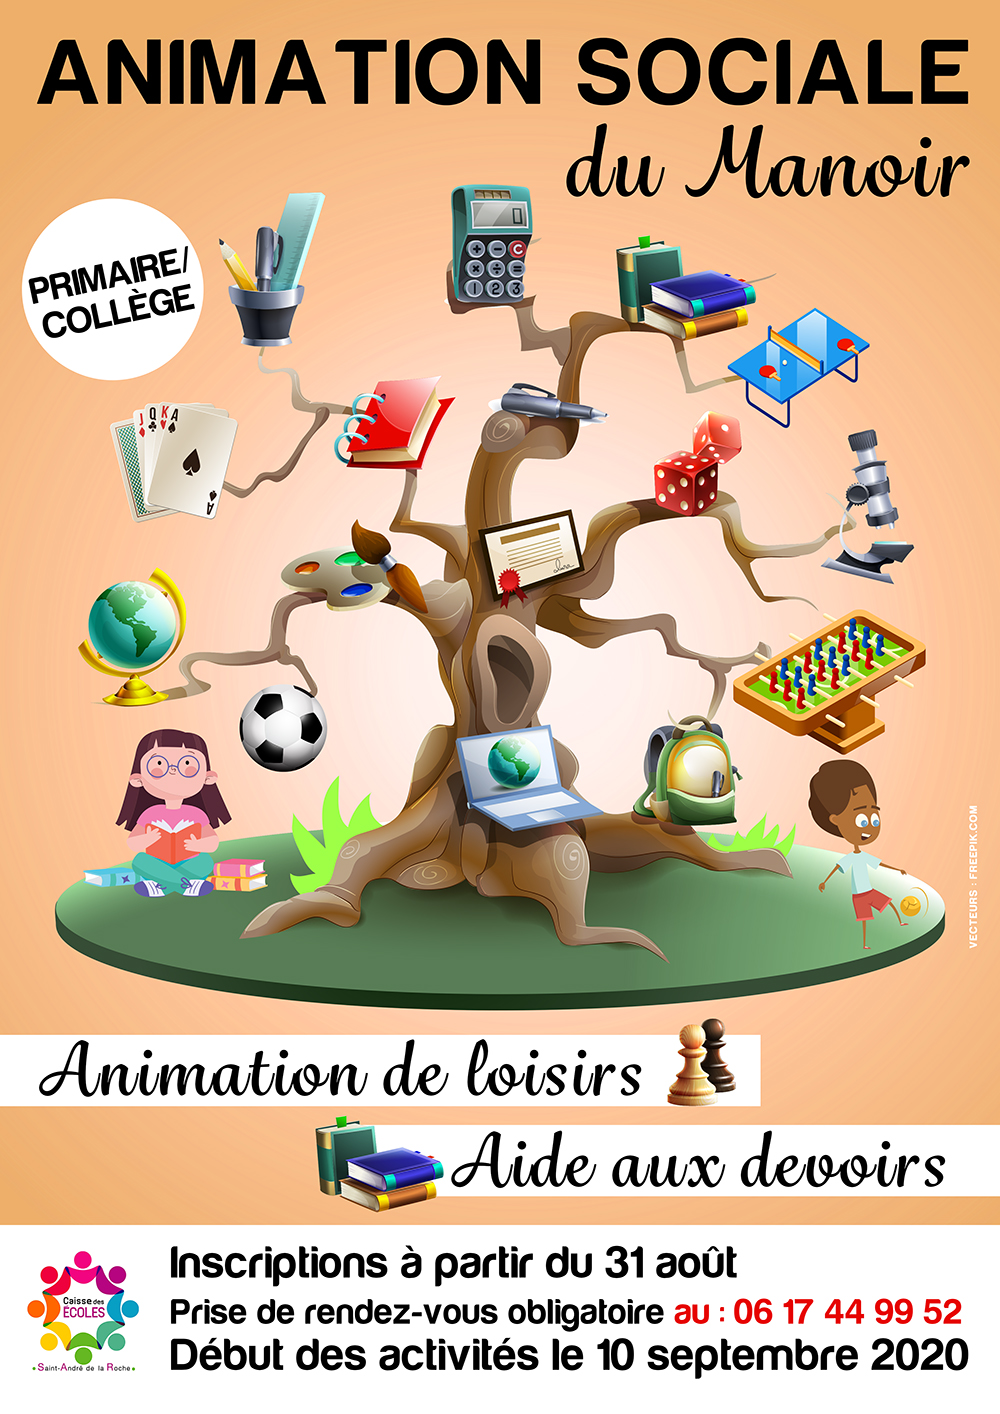 Animation Sociale du Manoir